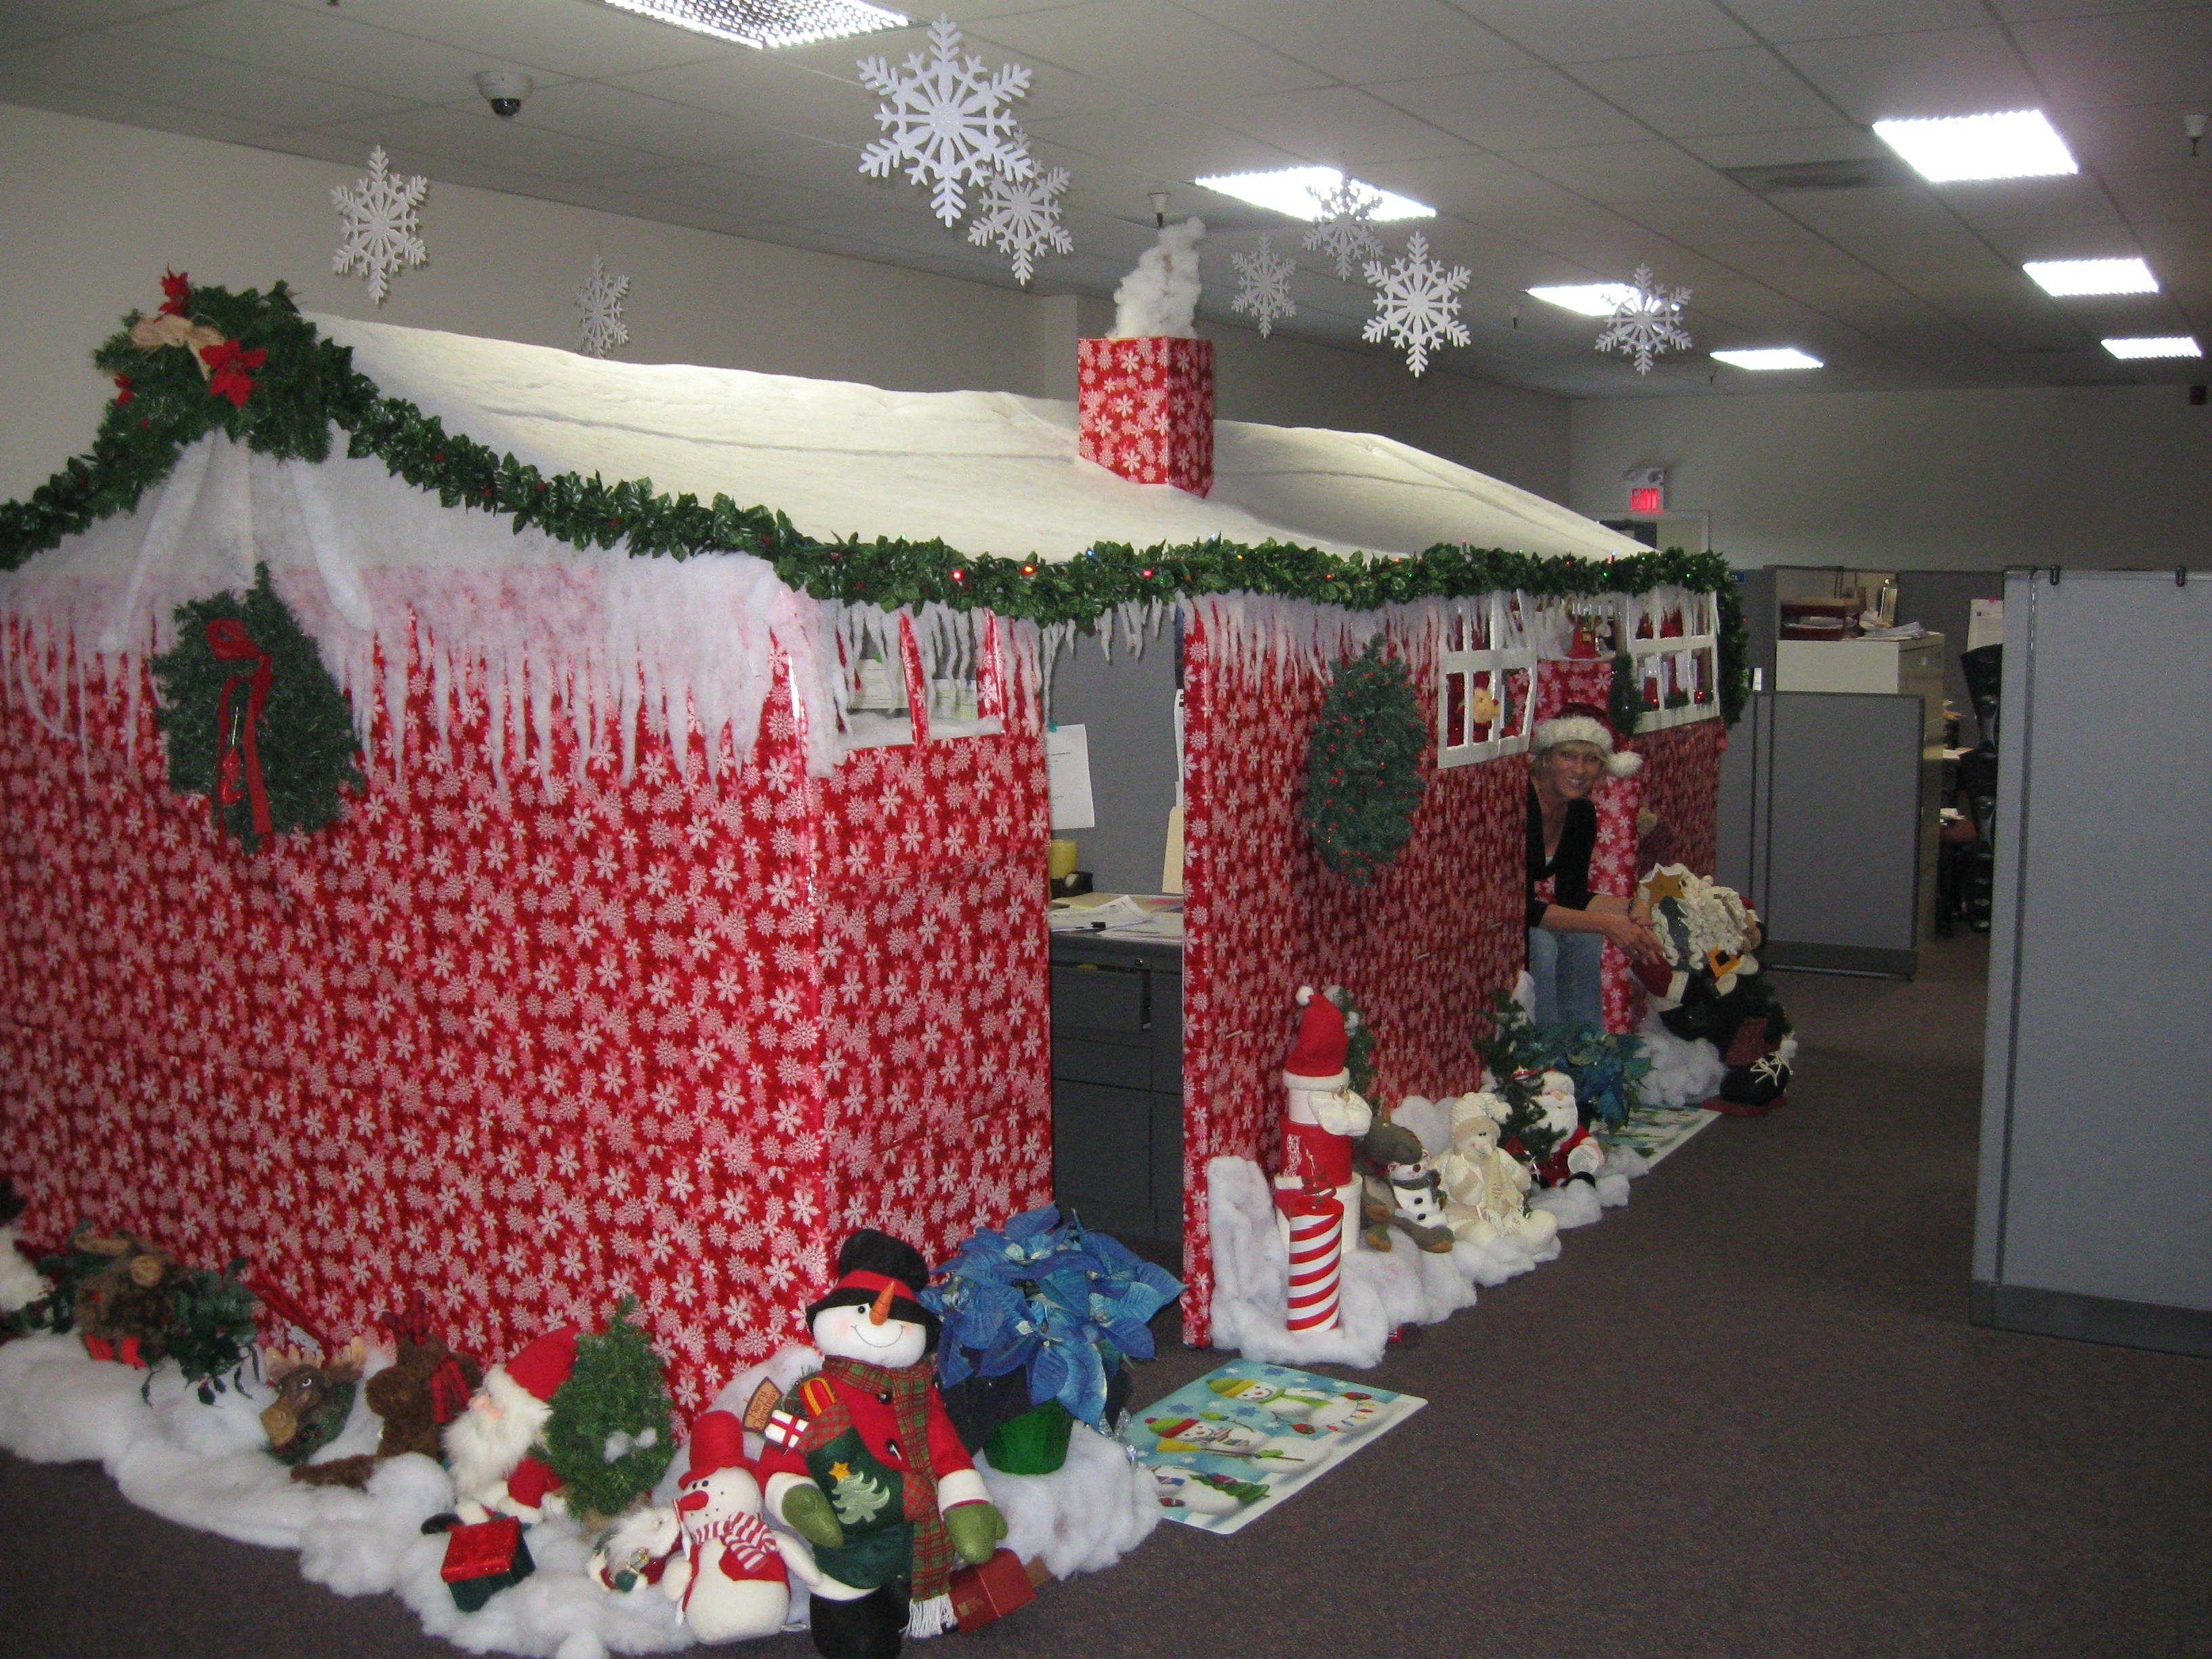 10 Spectacular Office Decorating Ideas For Christmas fresh christmas cubicle decorating ideas ceciliagalera 2021